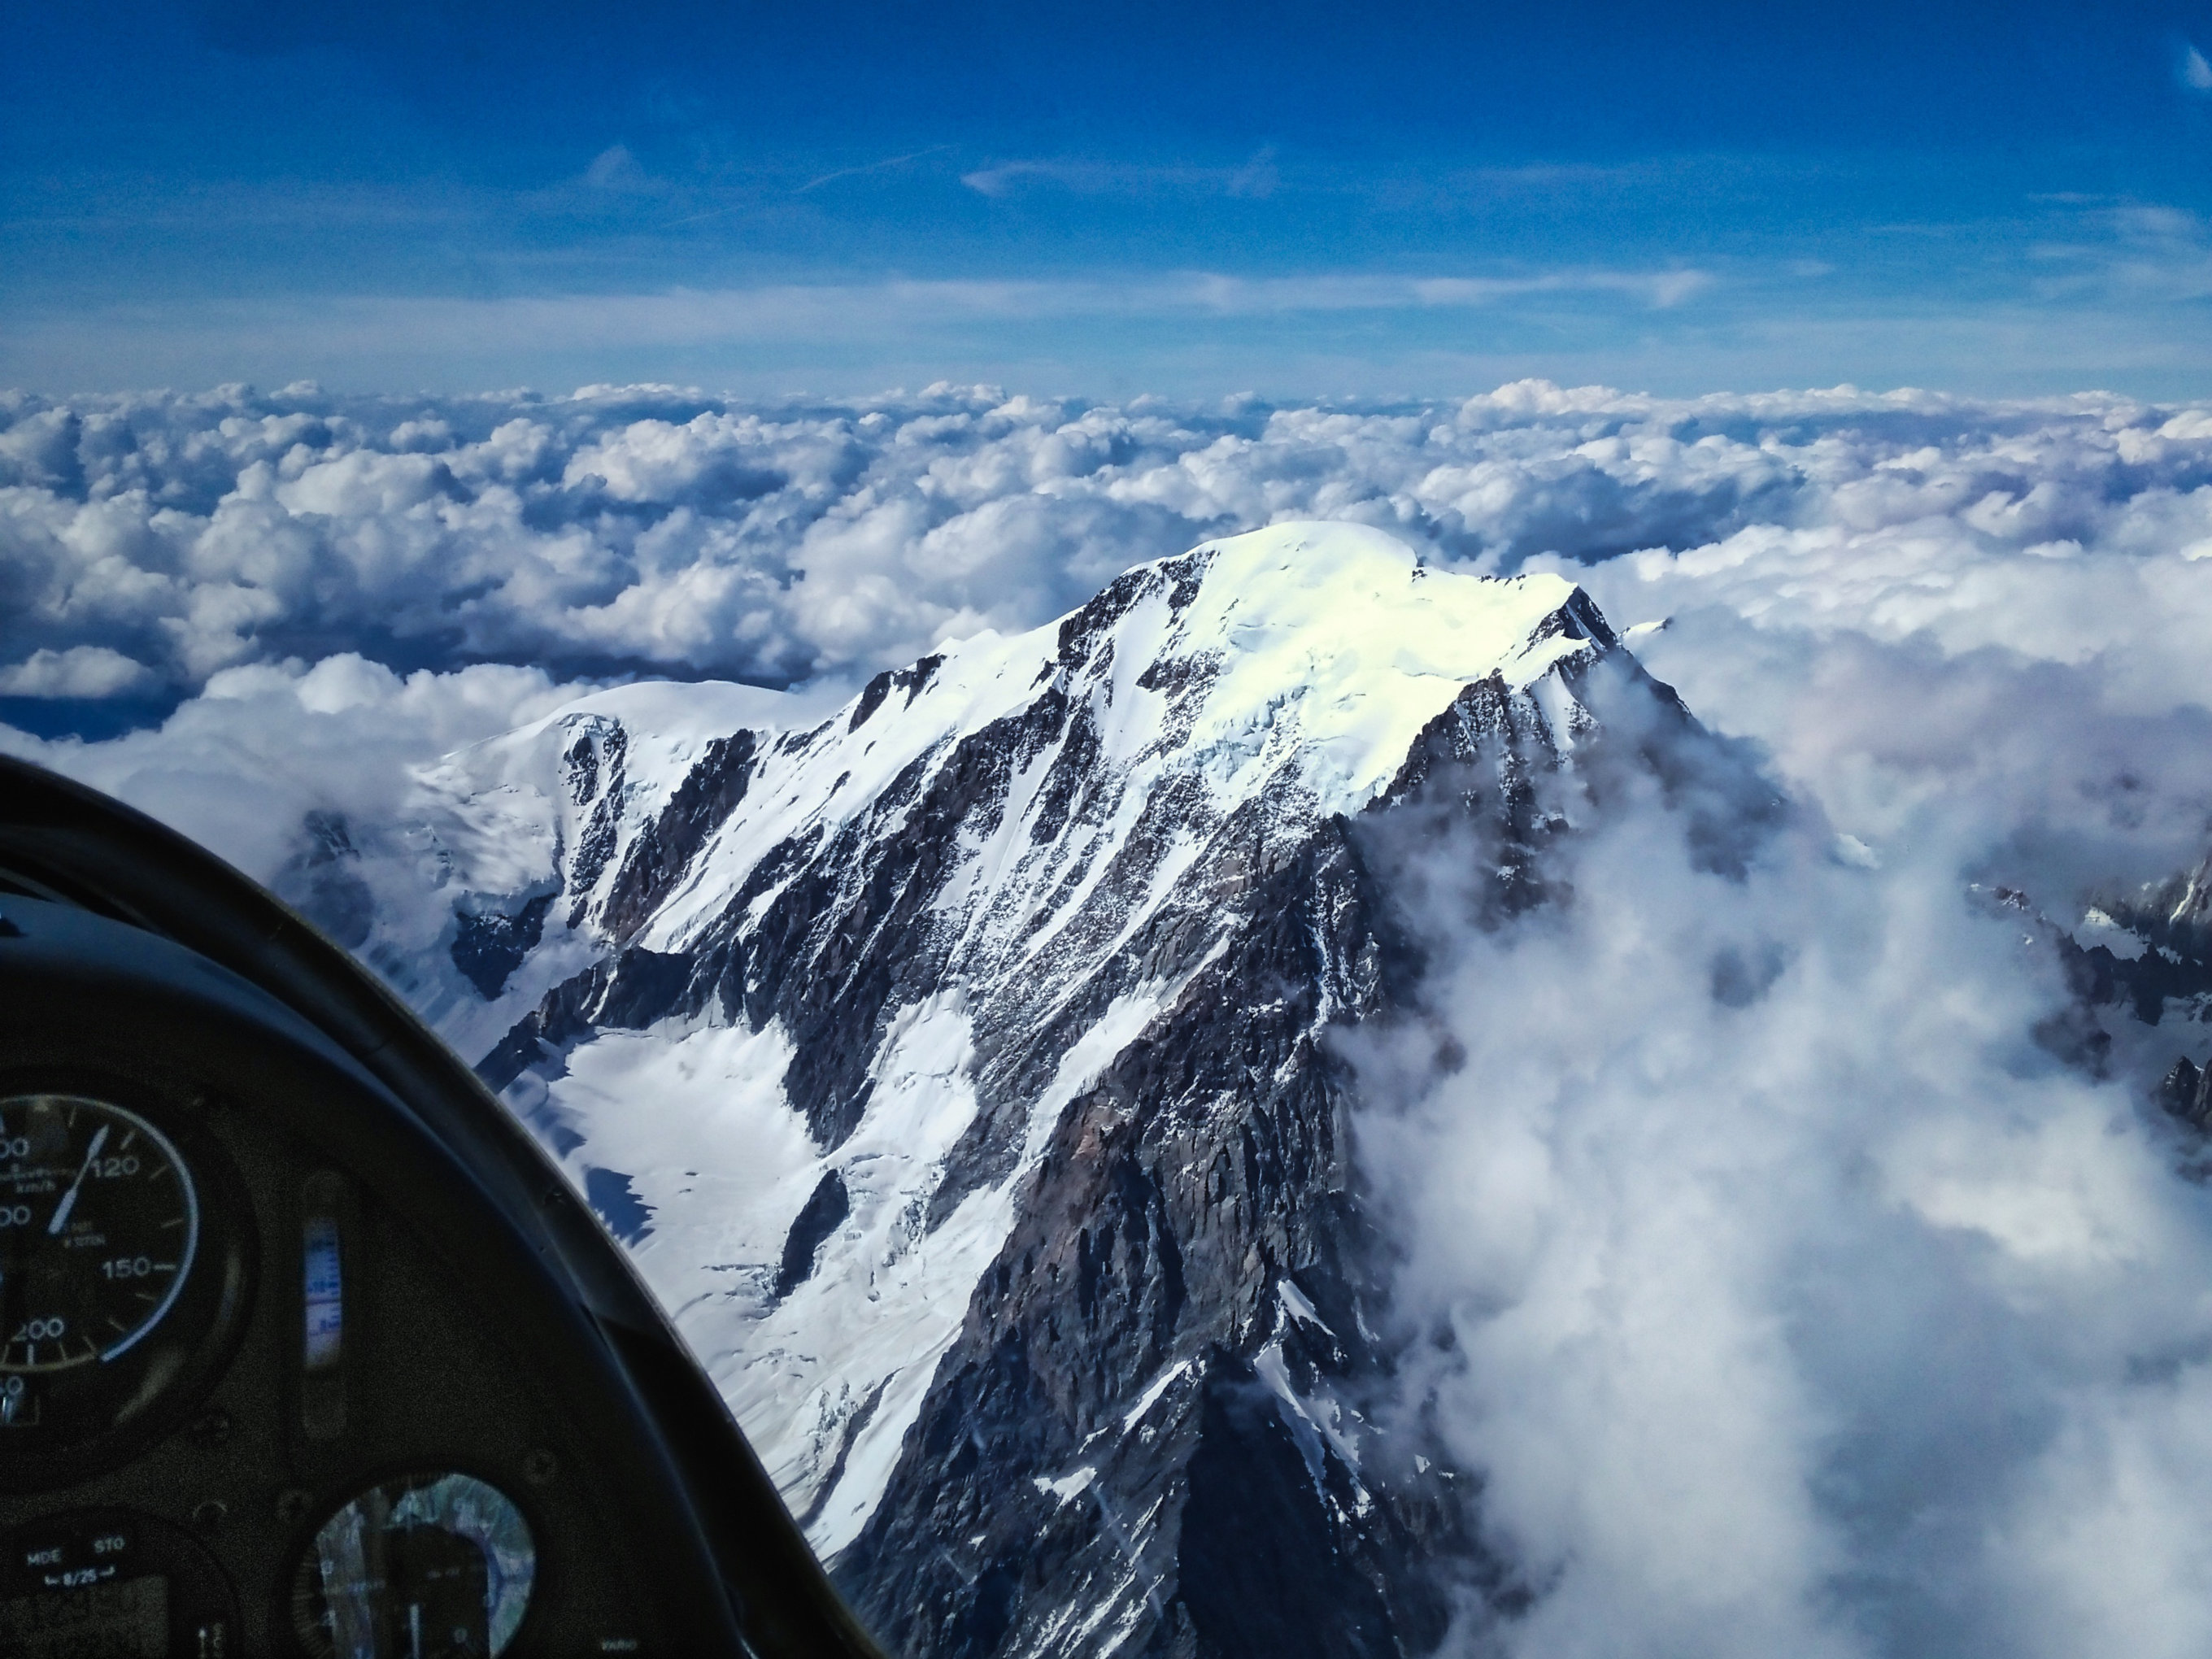 mont blanc seen from above from the glider